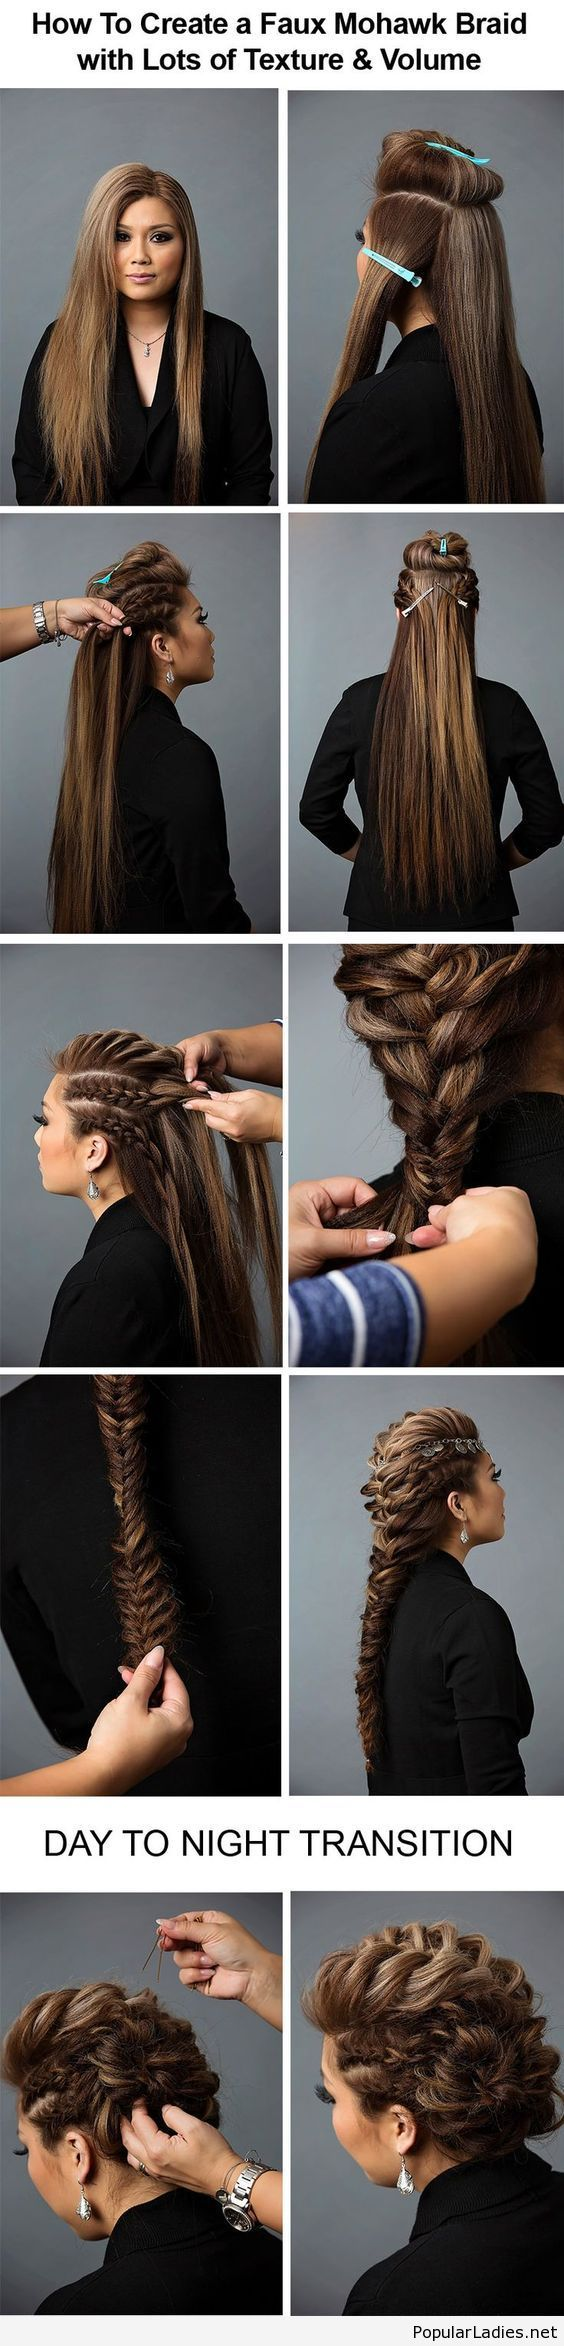 best ohh la la images on pinterest hair care hair colors and